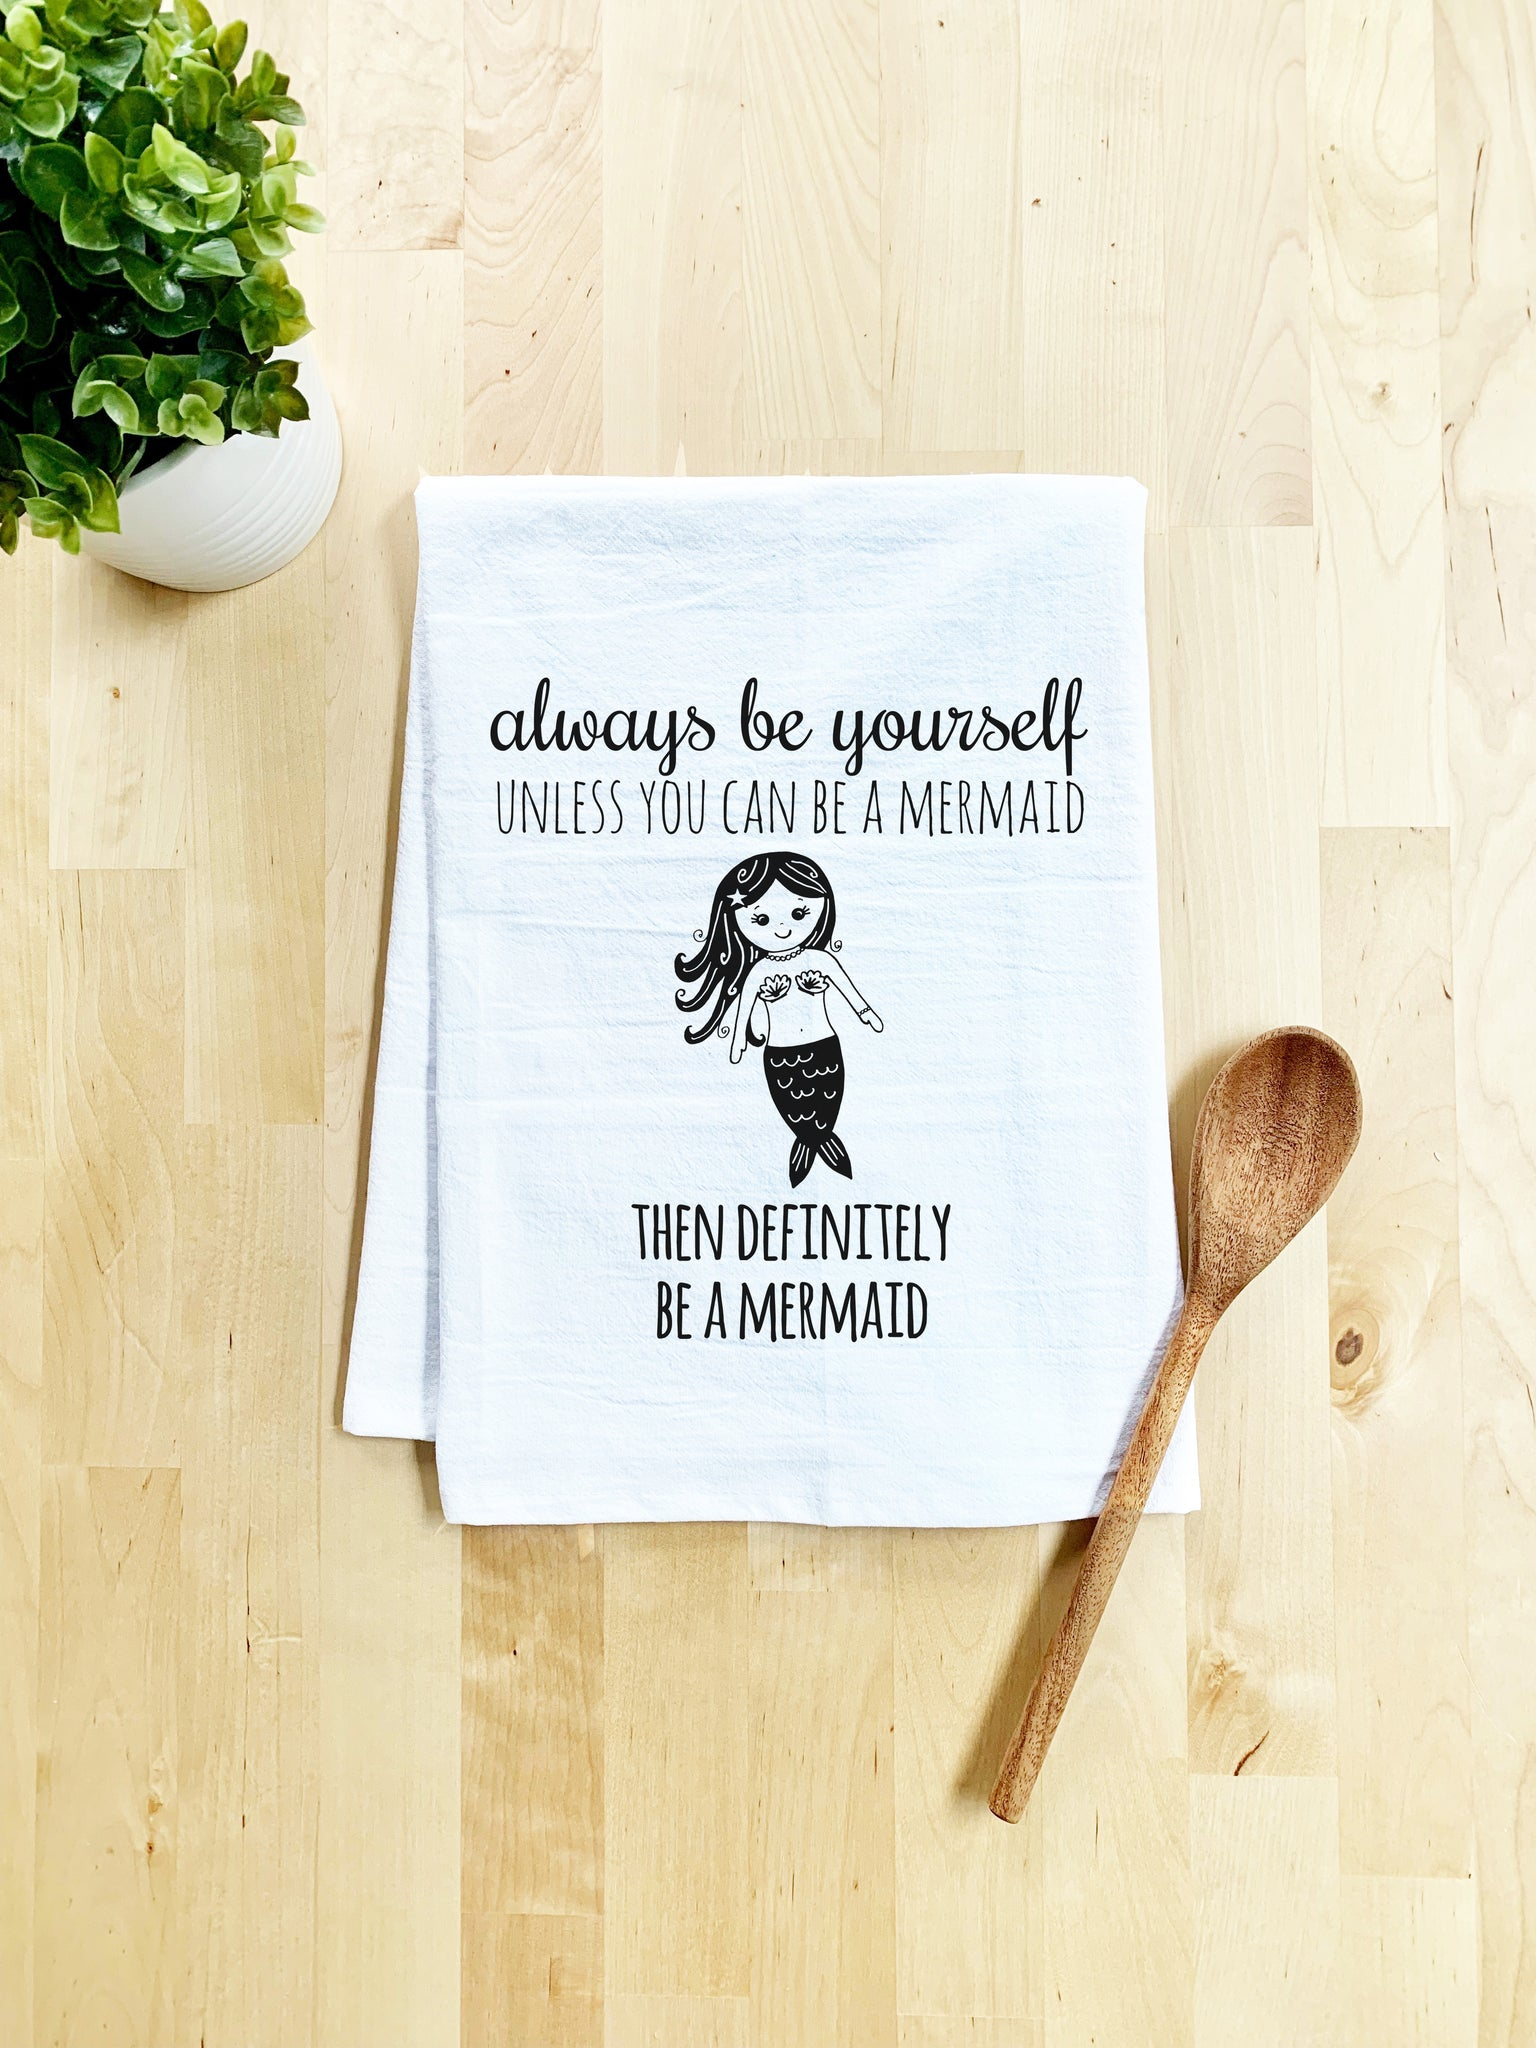 Always Be Yourself Unless You Can Be a Mermaid Then Definitely Be a Mermaid Dish Towel - White Or Gray - MoonlightMakers